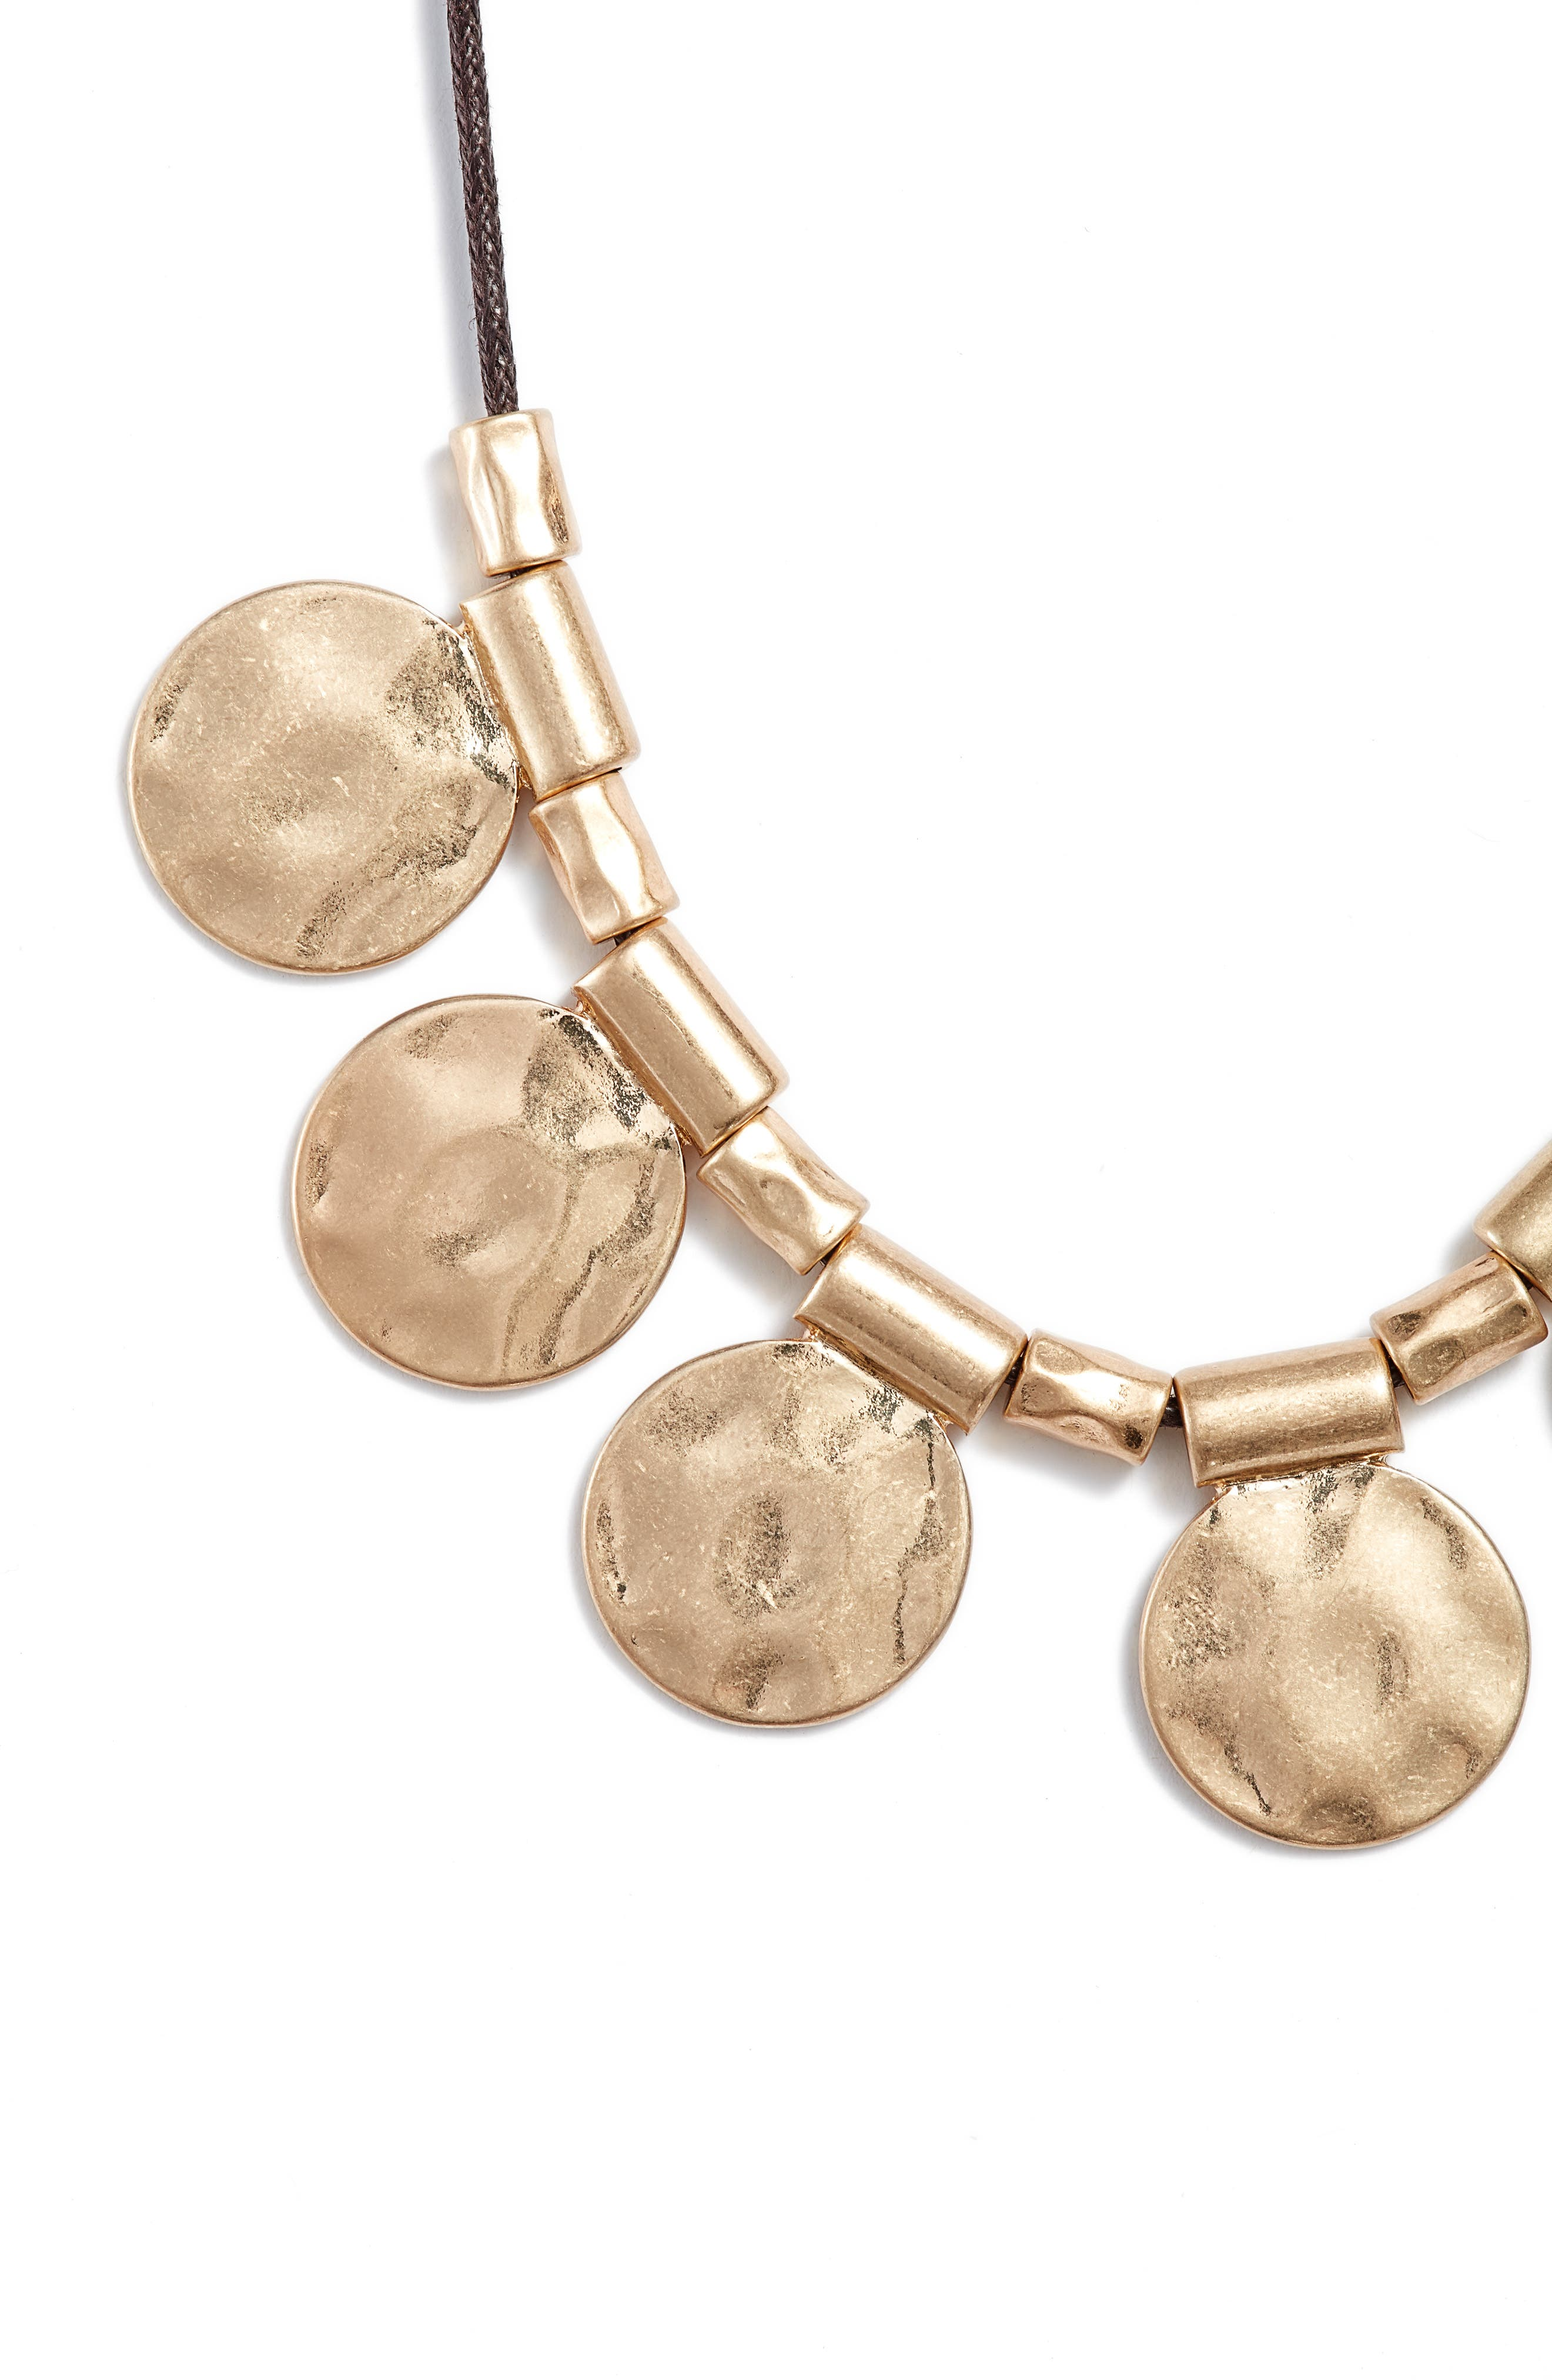 Organic Summer Metals Sliding Disc Necklace,                             Alternate thumbnail 2, color,                             Brown- Gold